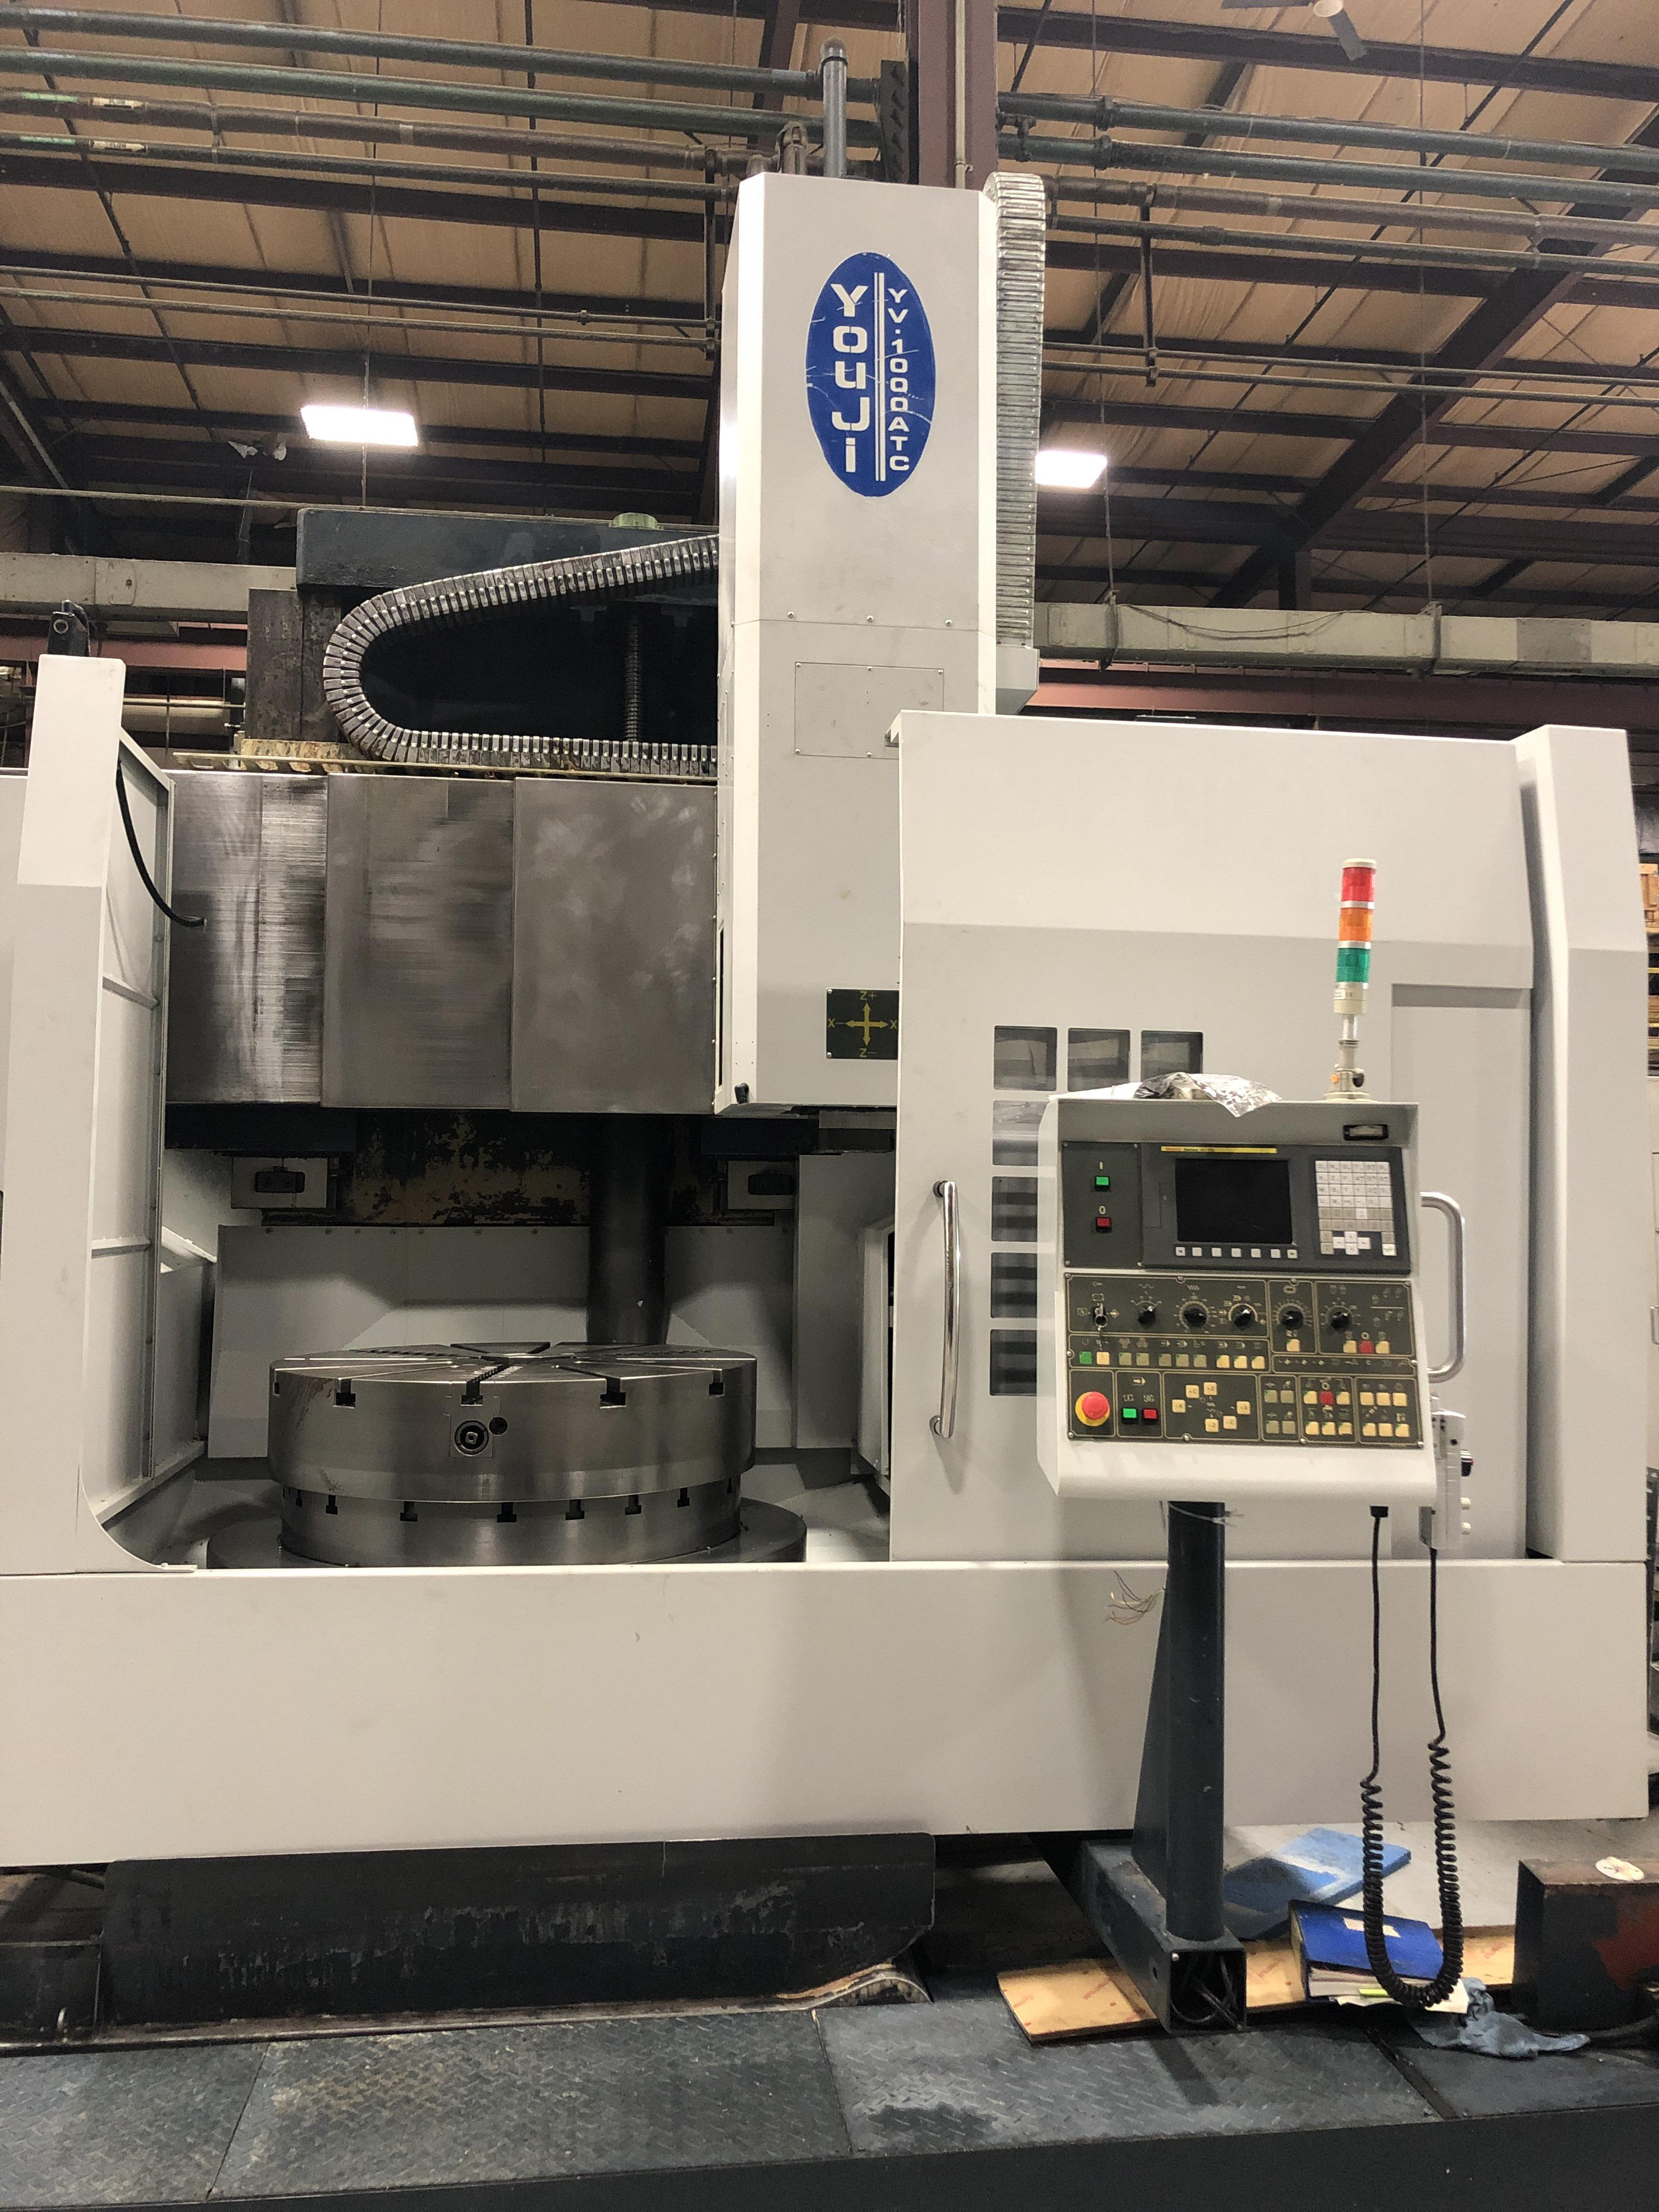 2006 YOU JI YV-1000 ATC - CNC Vertical Lathe